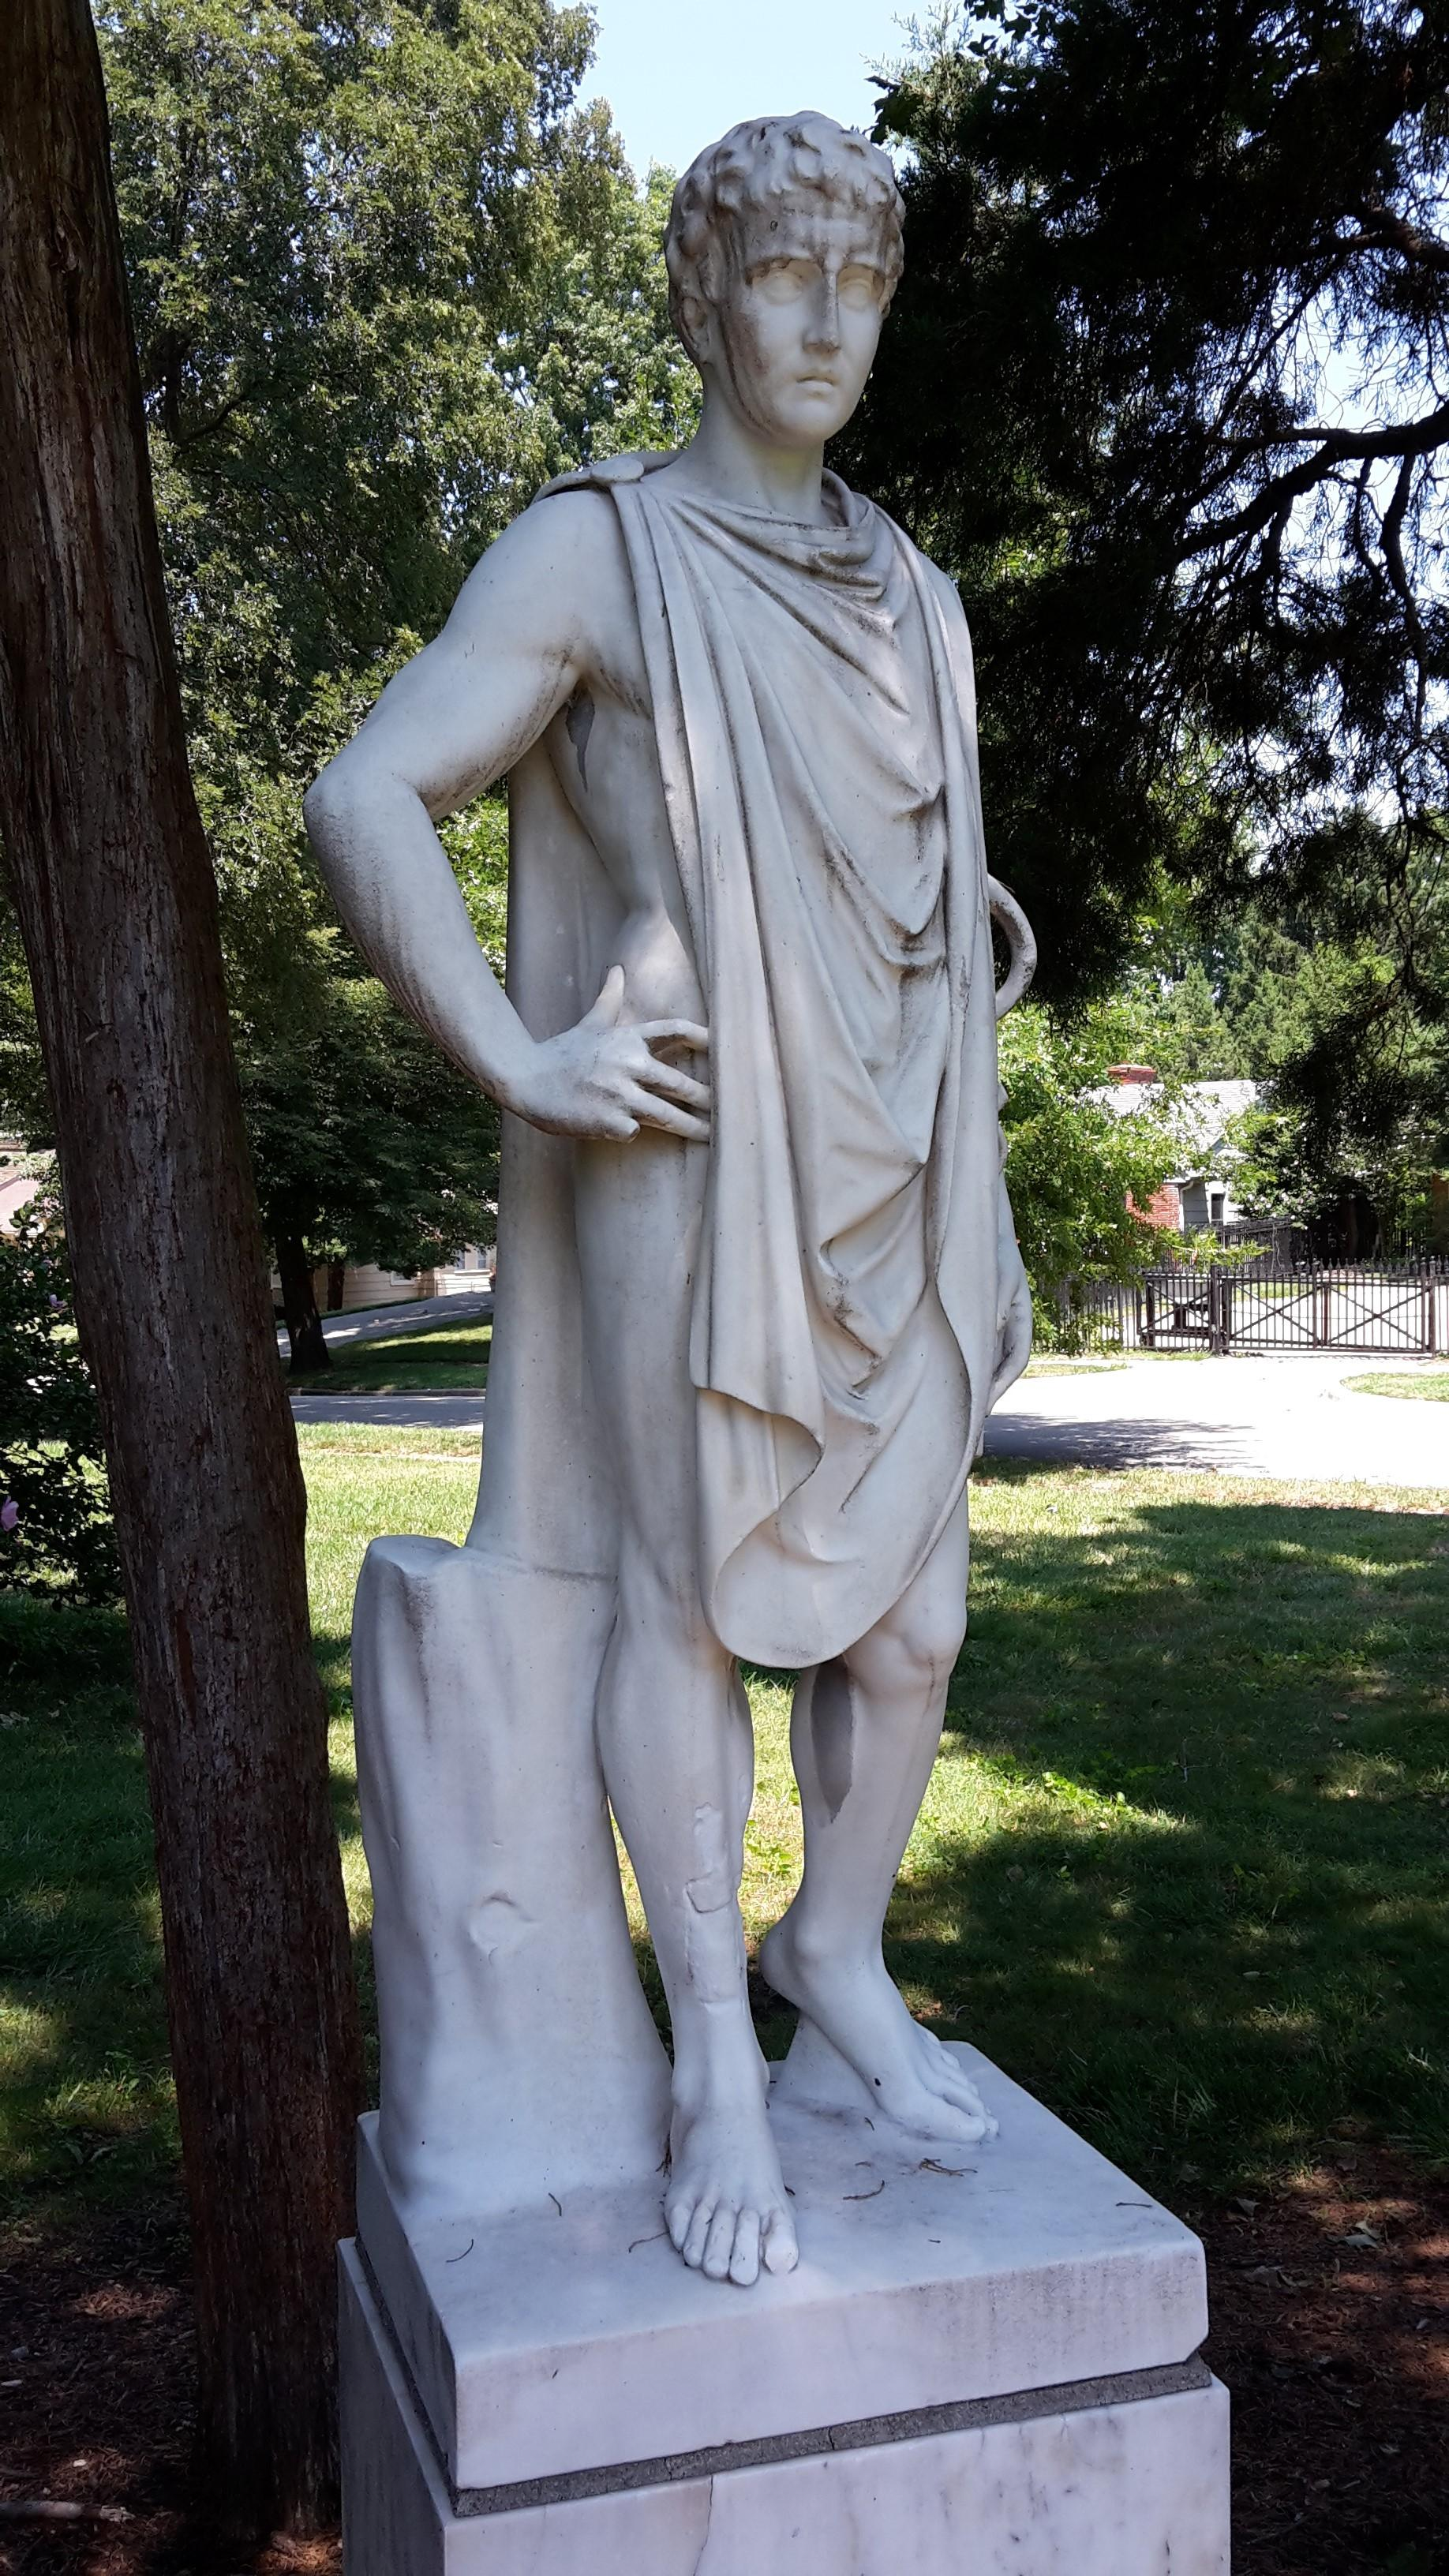 Charmant An 18th Century Statue Of Hippocrates Was Originally Owned By The Sears  Family, Owner Of Textile Mills In Weston, Massachusetts, According To The  Romanelli ...